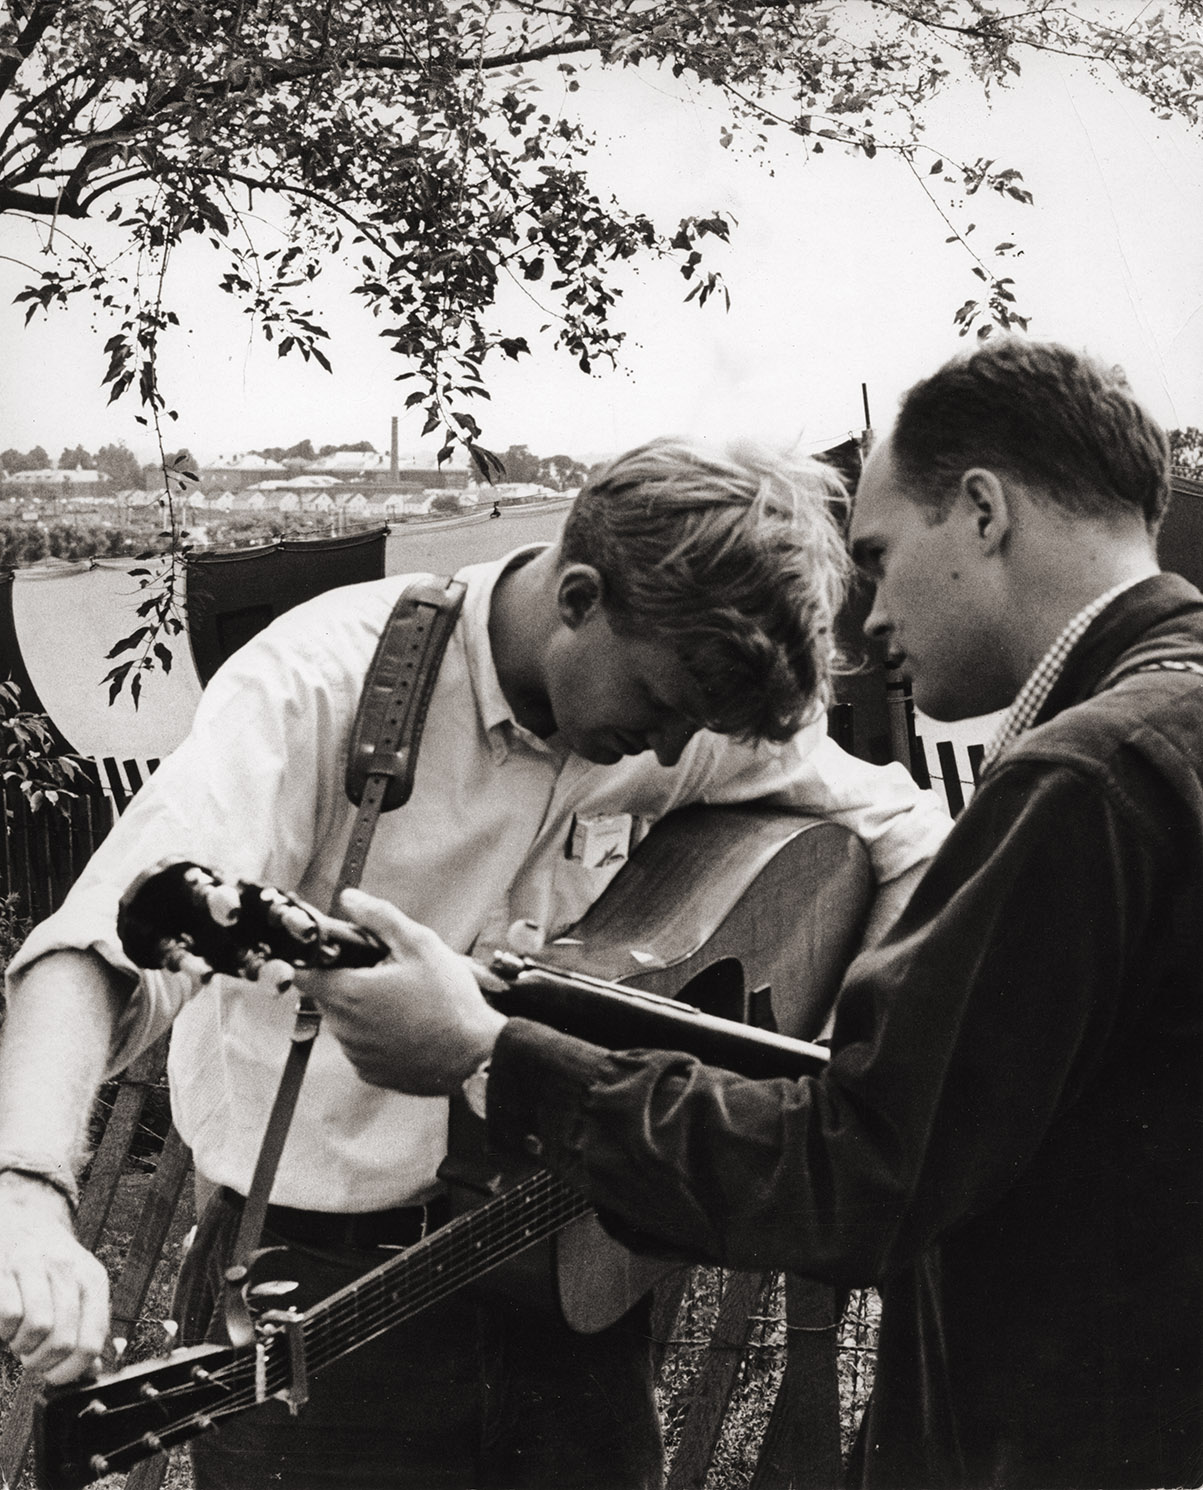 Depiction of Bill Keith (r.) and Jim Rooney at the Newport Folk Festival, 1965